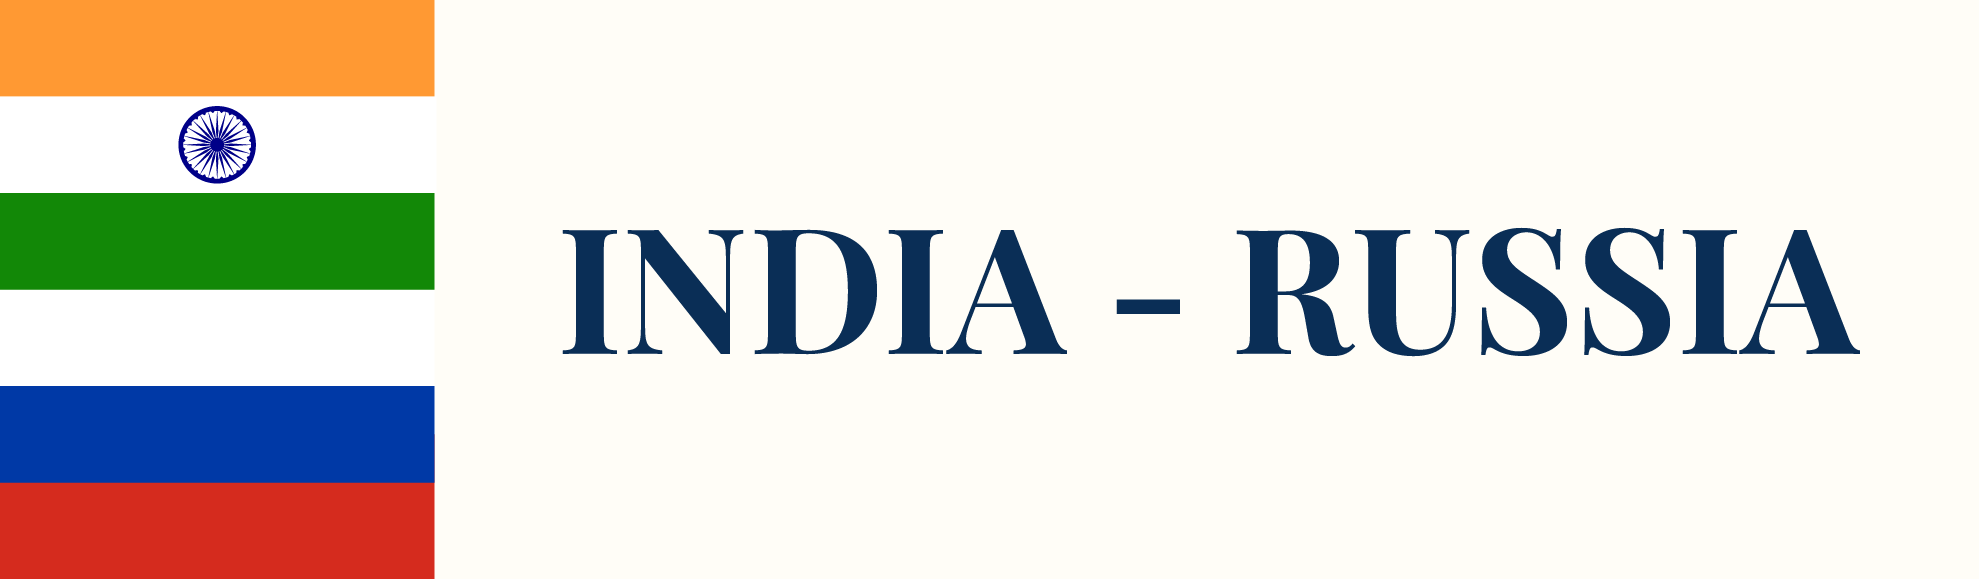 India-Russia_Bilateral_Headers